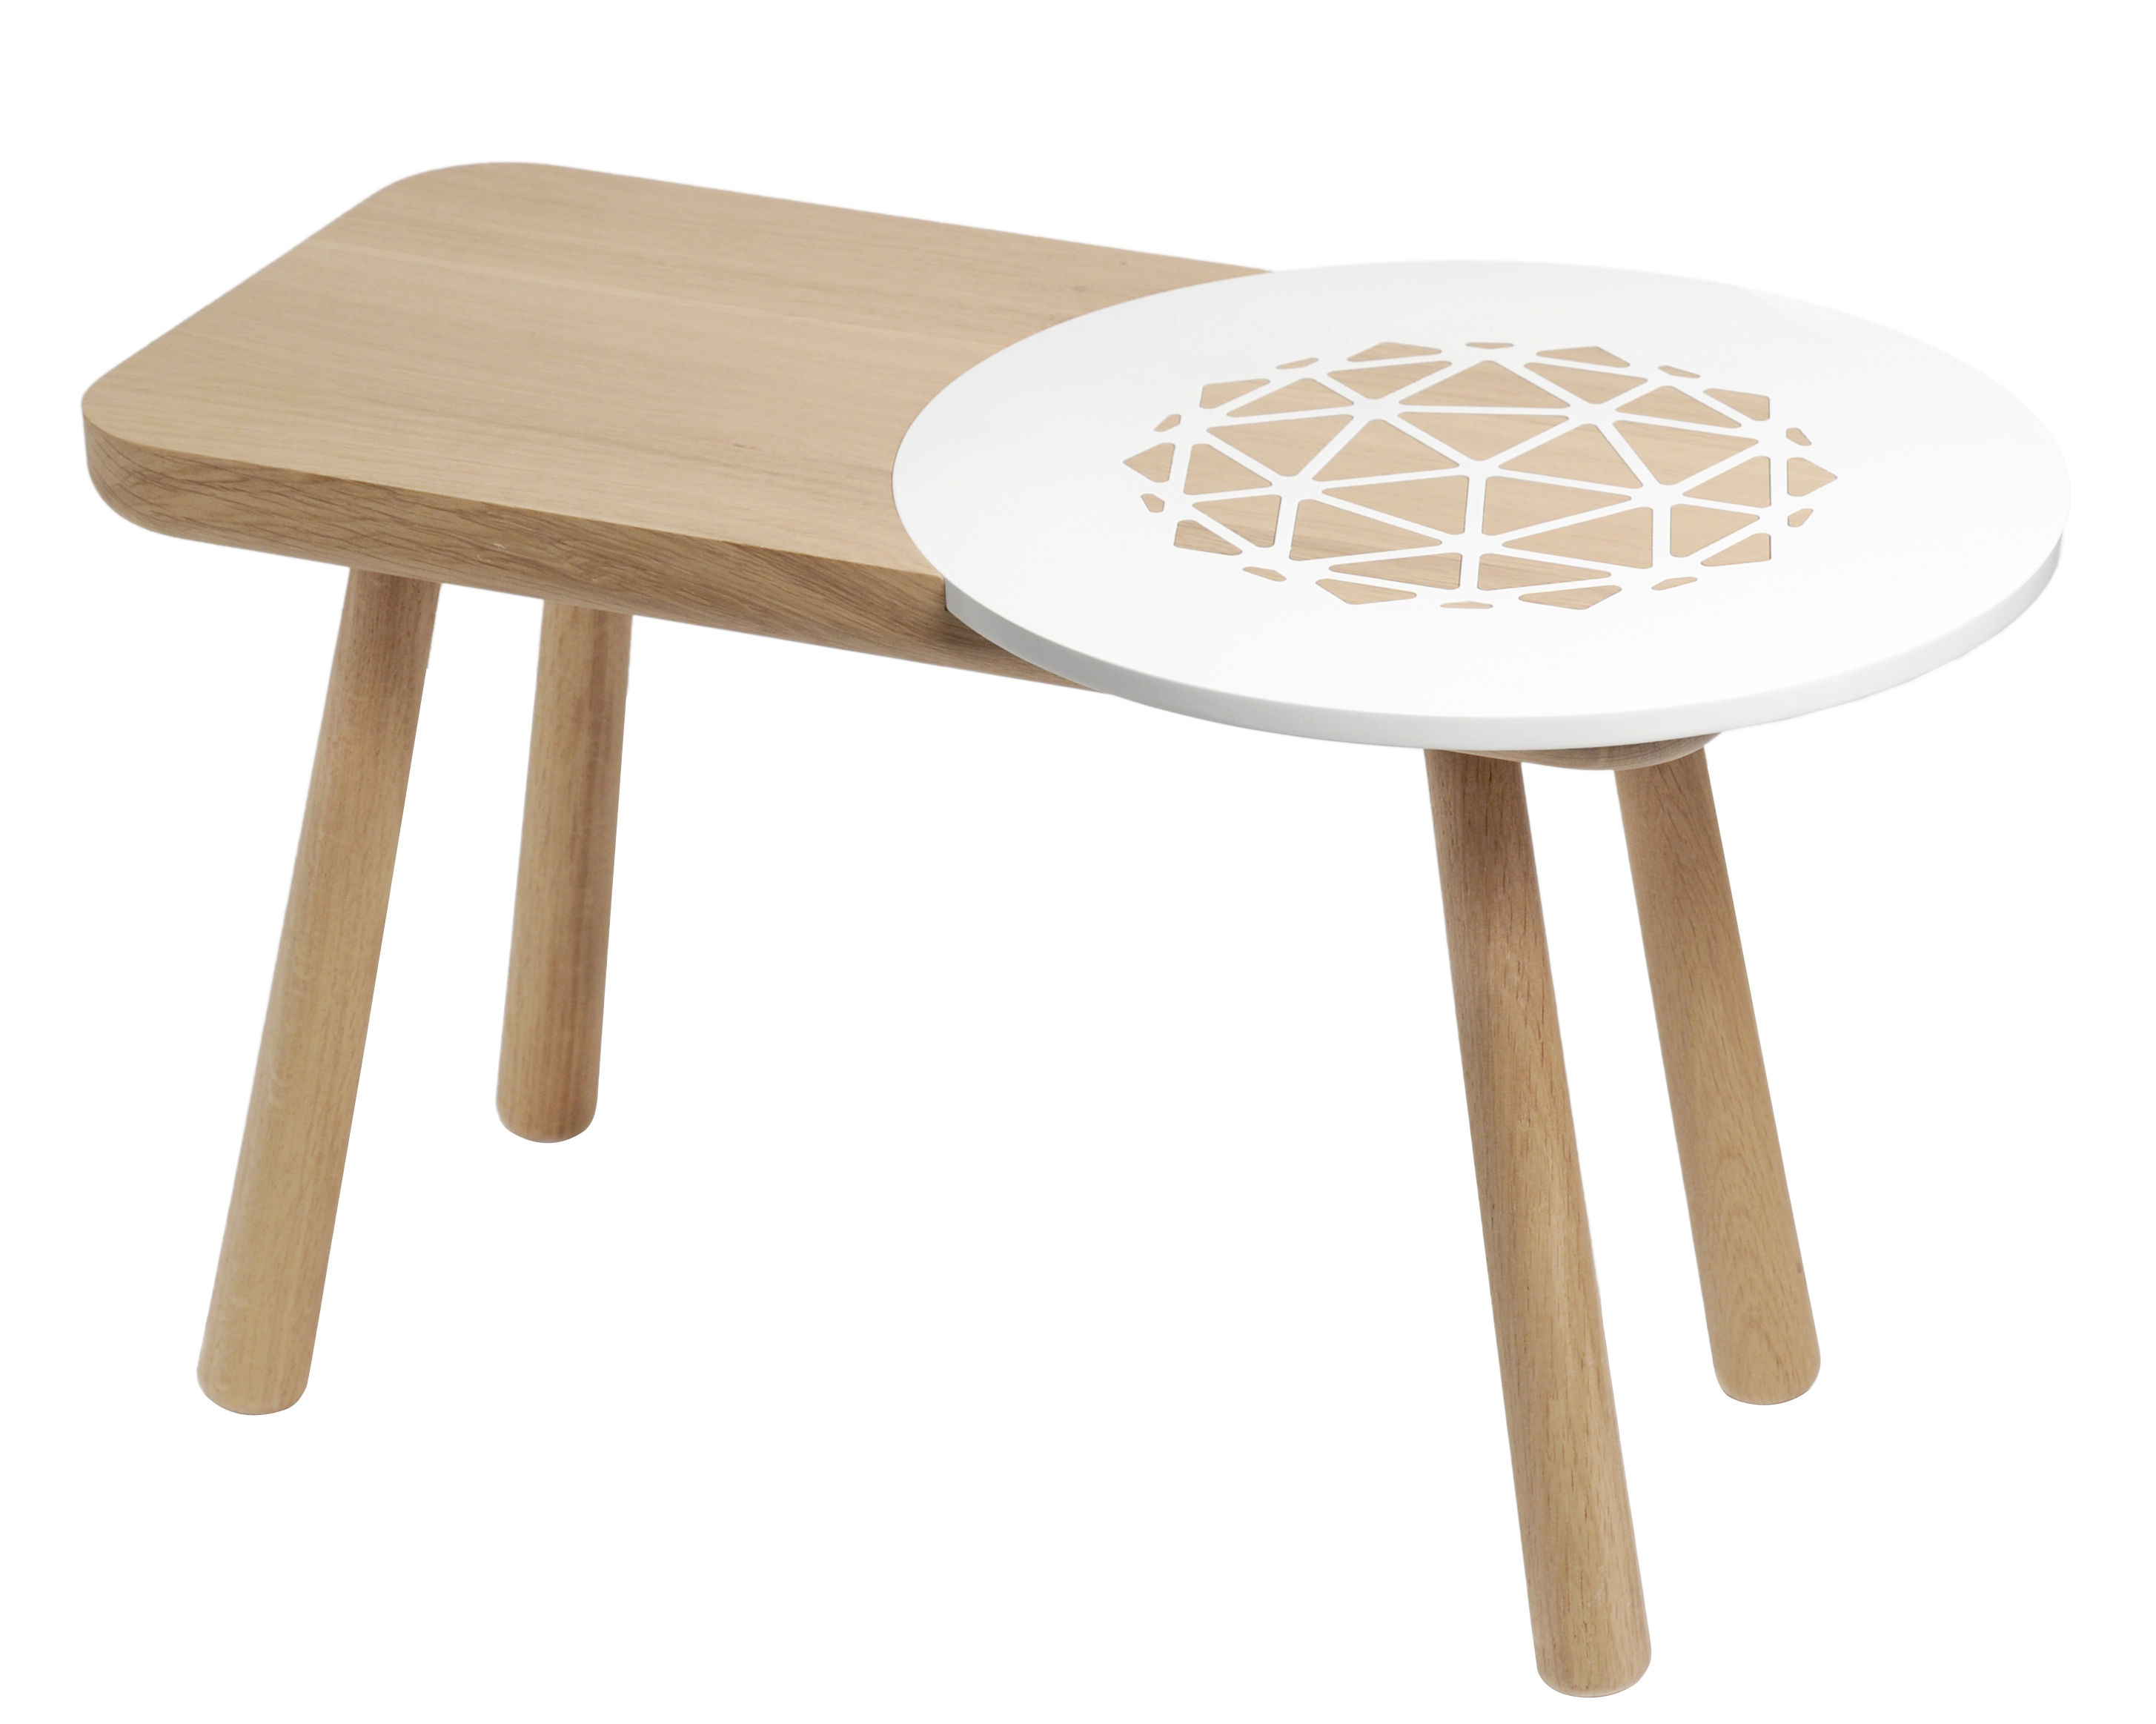 Les Biches Coffee Table Round 70 X 40 Cm Natural Wood White By Y 39 A Pas Le Feu Au Lac